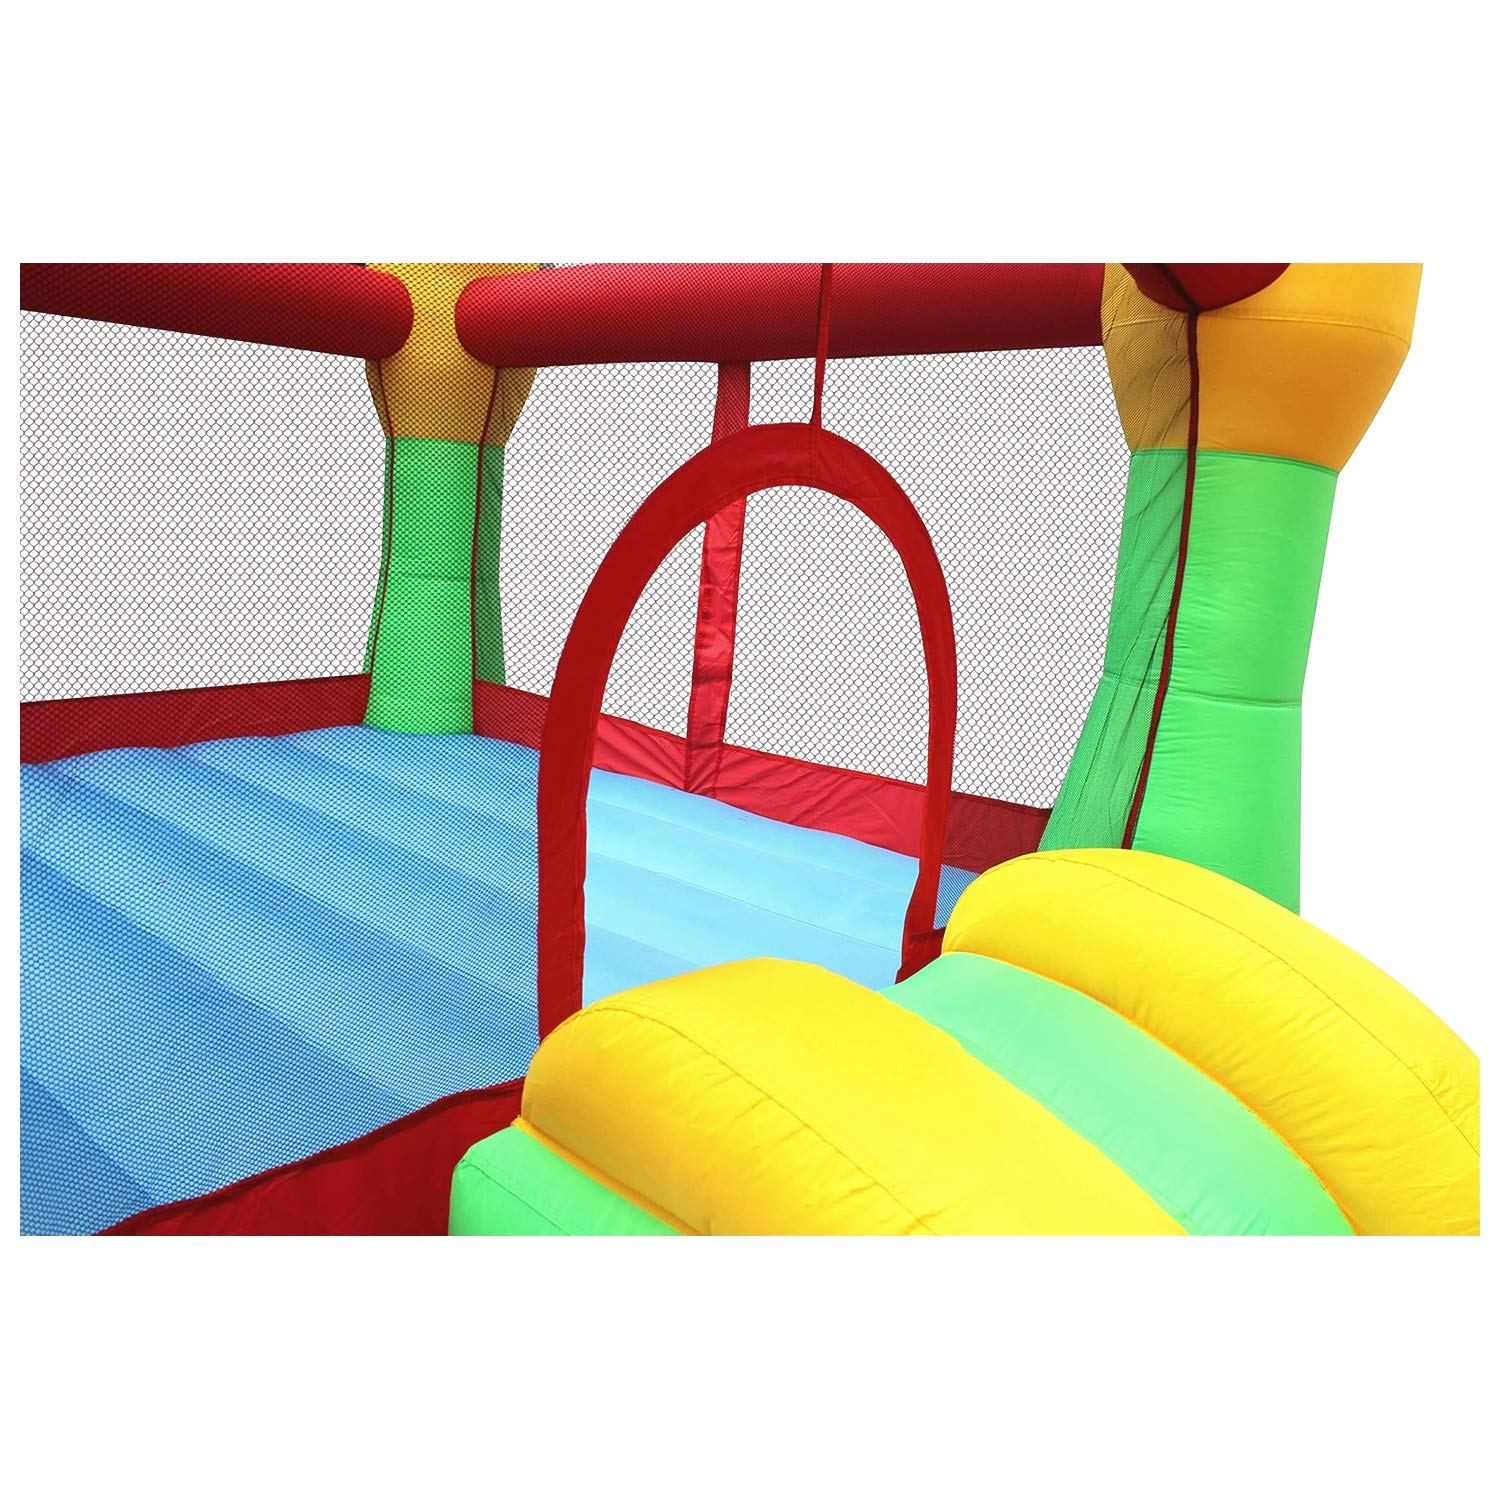 BestParty Inflatable Bounce House Castle Jumper Moonwalk Slide Inflatable Jumping Bouncy House with Blower by BestParty (Image #4)